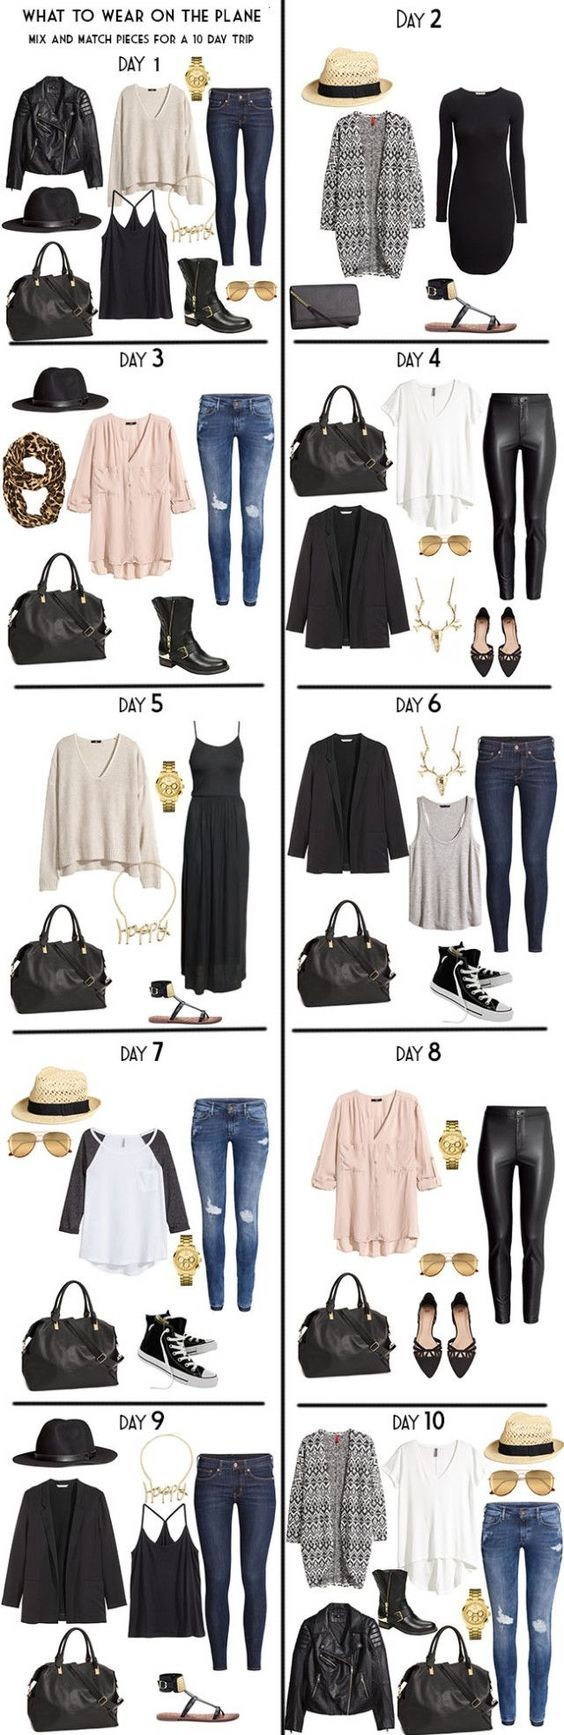 10 Day Packing List From Day to Night 7